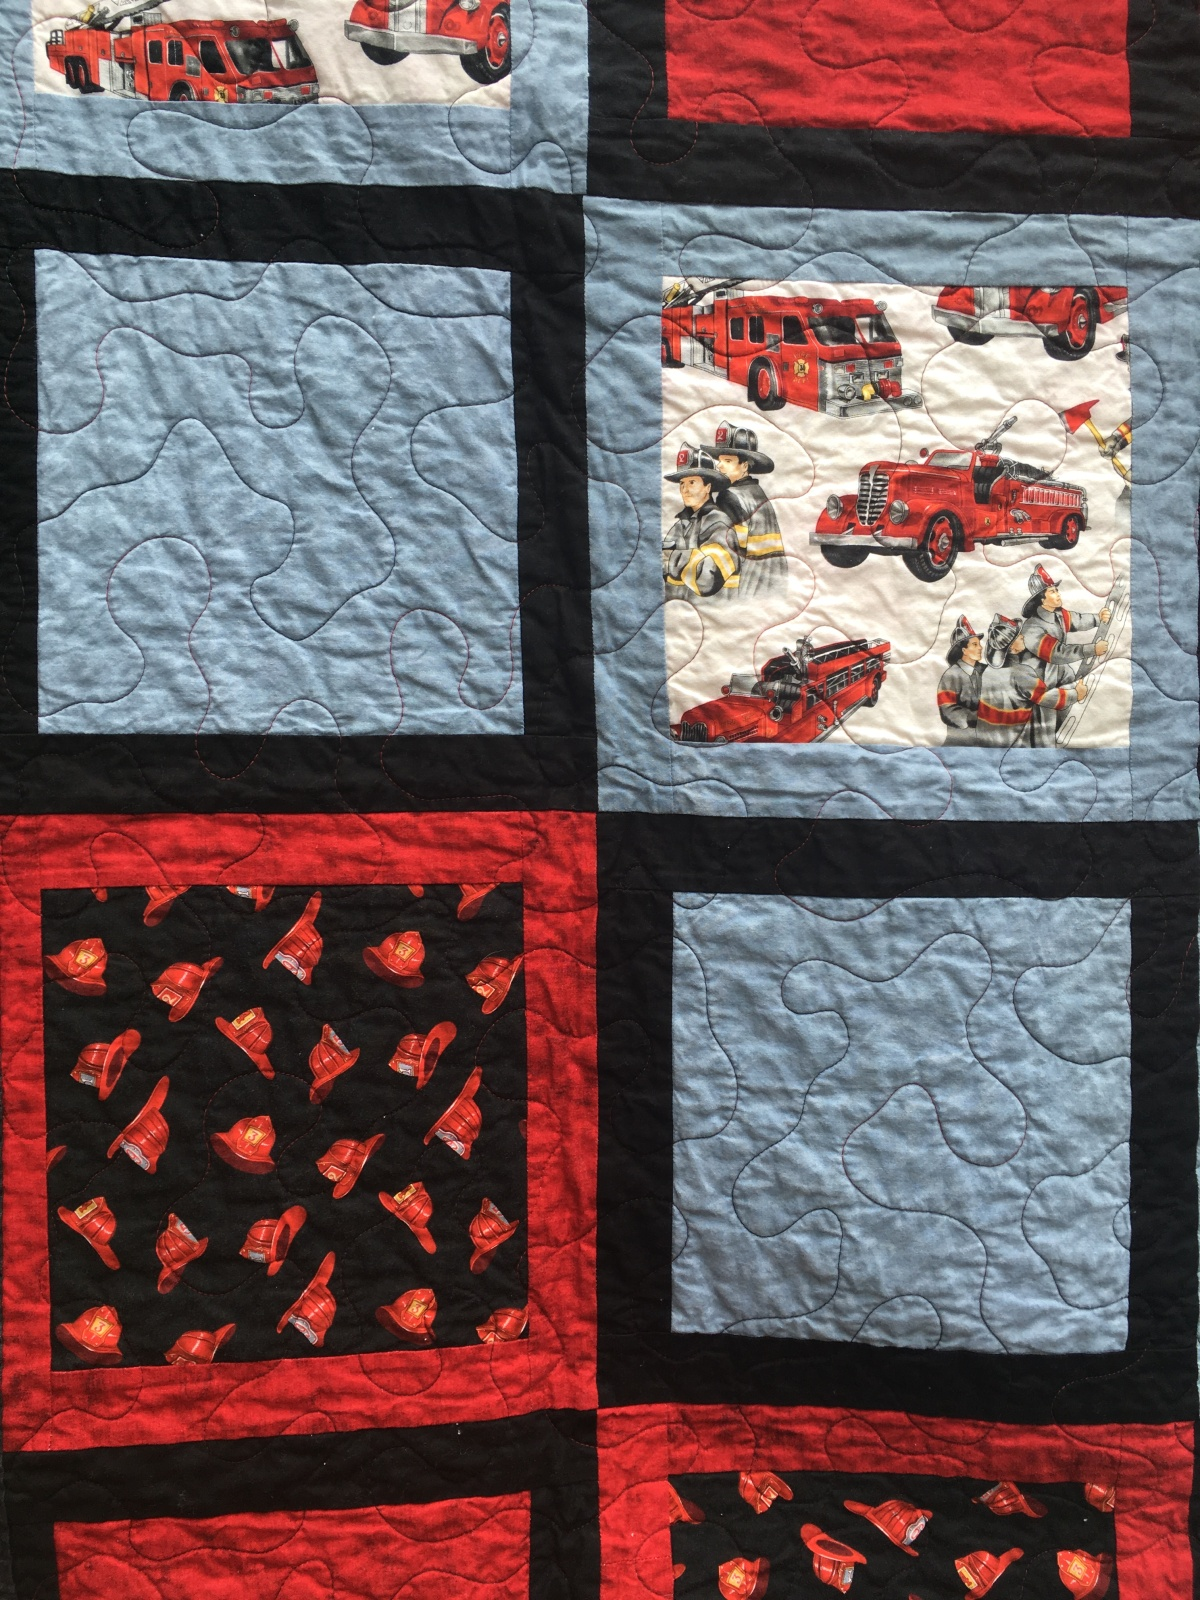 Online Market Quilt Showcase 9 – Science, Firefighters, and Boy Scout Quilts